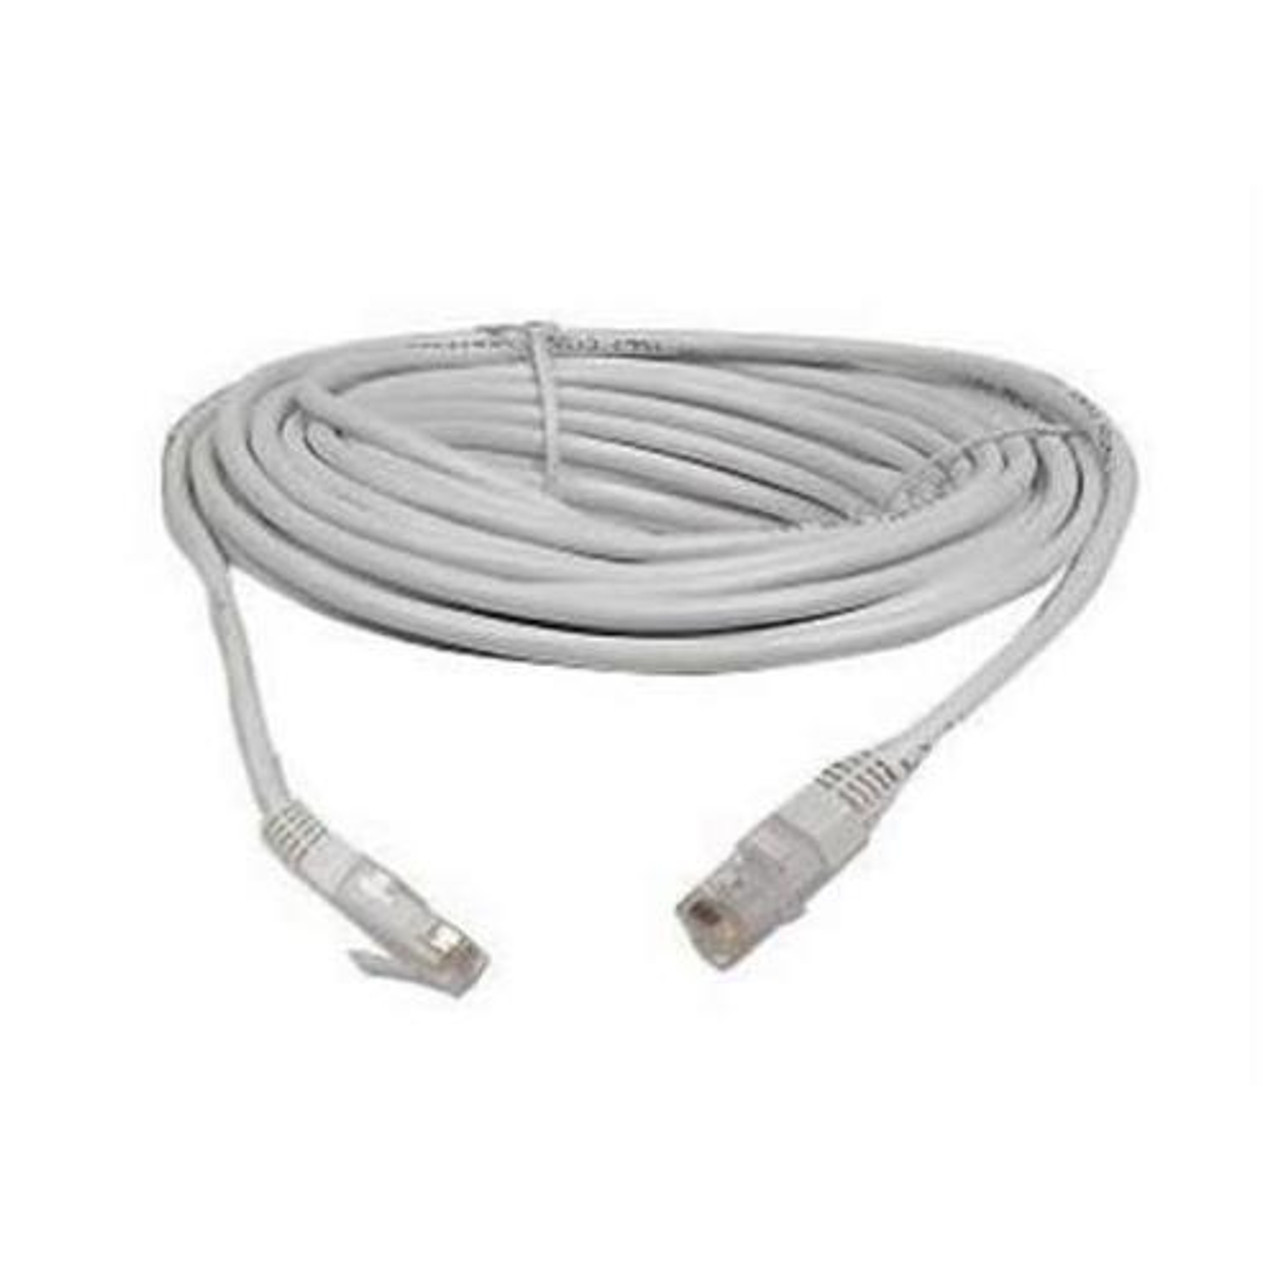 NORTEL Networks Baystack 55XX stacking cable 1.5.FT AL2018011 E6